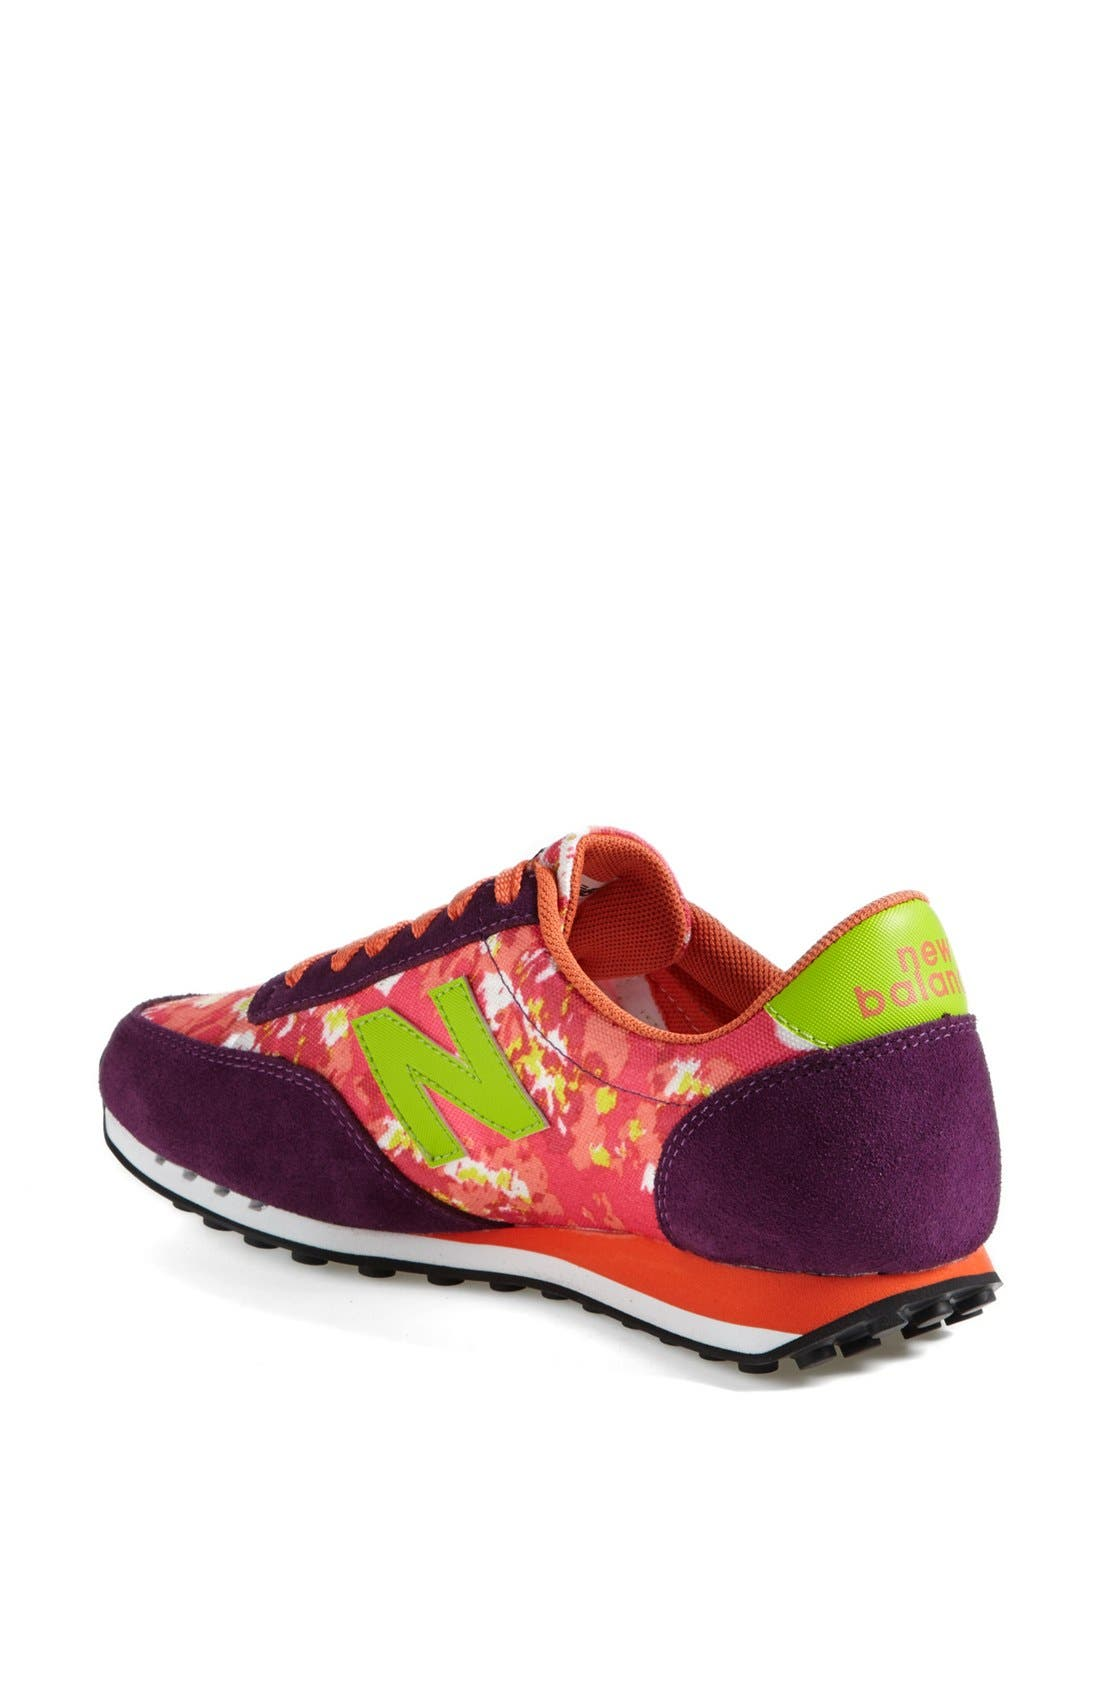 Alternate Image 2  - New Balance '410 Floral Blur' Sneaker (Women)